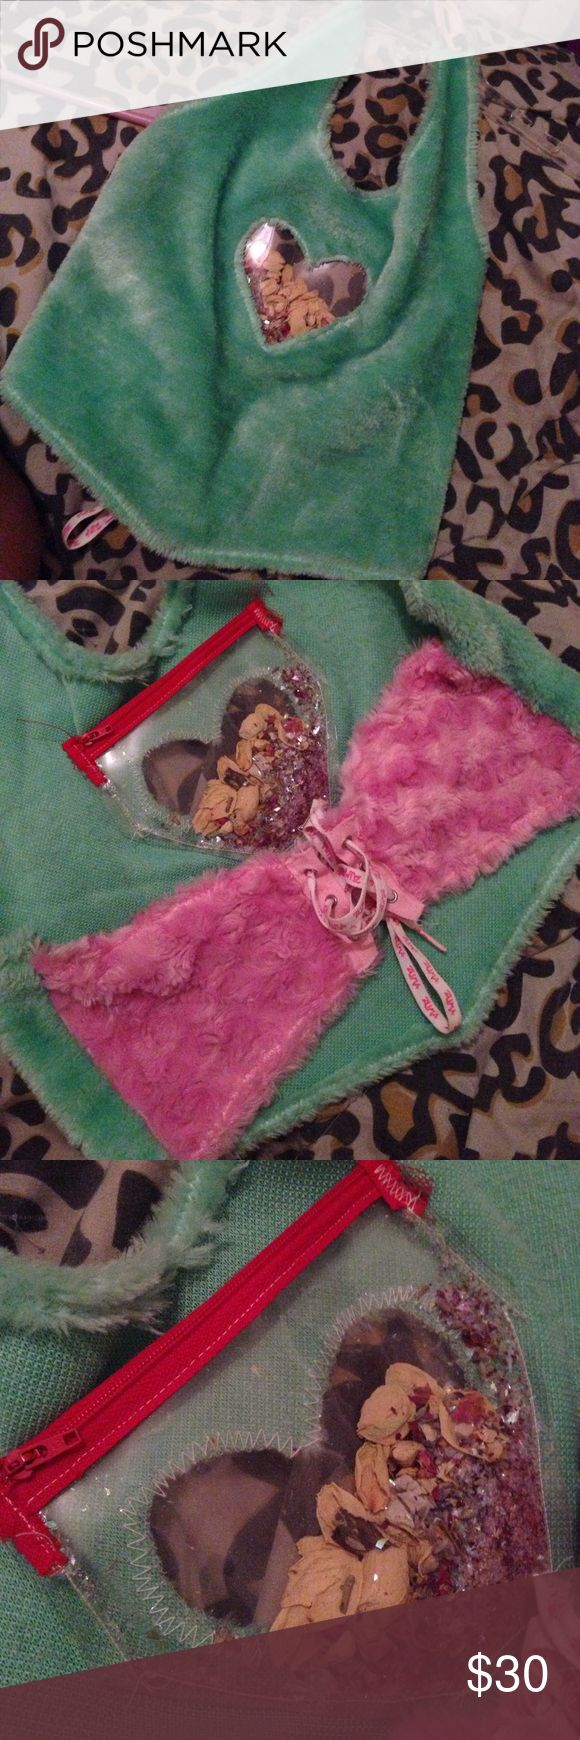 Cyber Angels halter top Handmade and One of a kind!! fuzzy cyber angels halter top w a pouch u can put anything you want in, rn there are rose petals and glitter in it. its so hard for me to put this up for sale cause its sooo cute but i don't think it looks flattering on me. Cyber Angels Tops Crop Tops